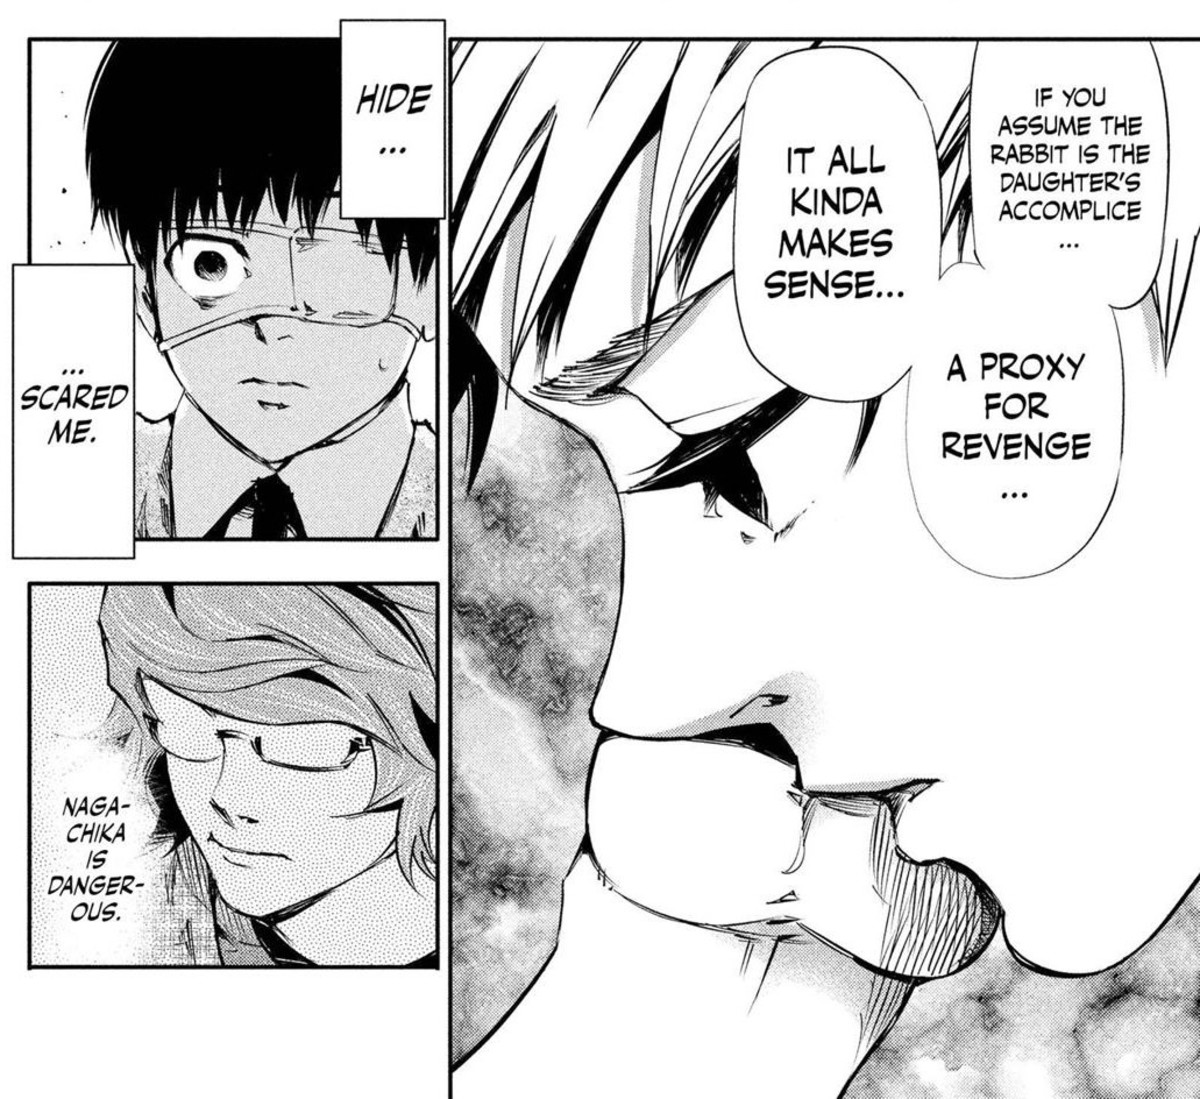 Kaneki getting scared of Hide's deduction skills and Nishio stating that Hide is dangerous.